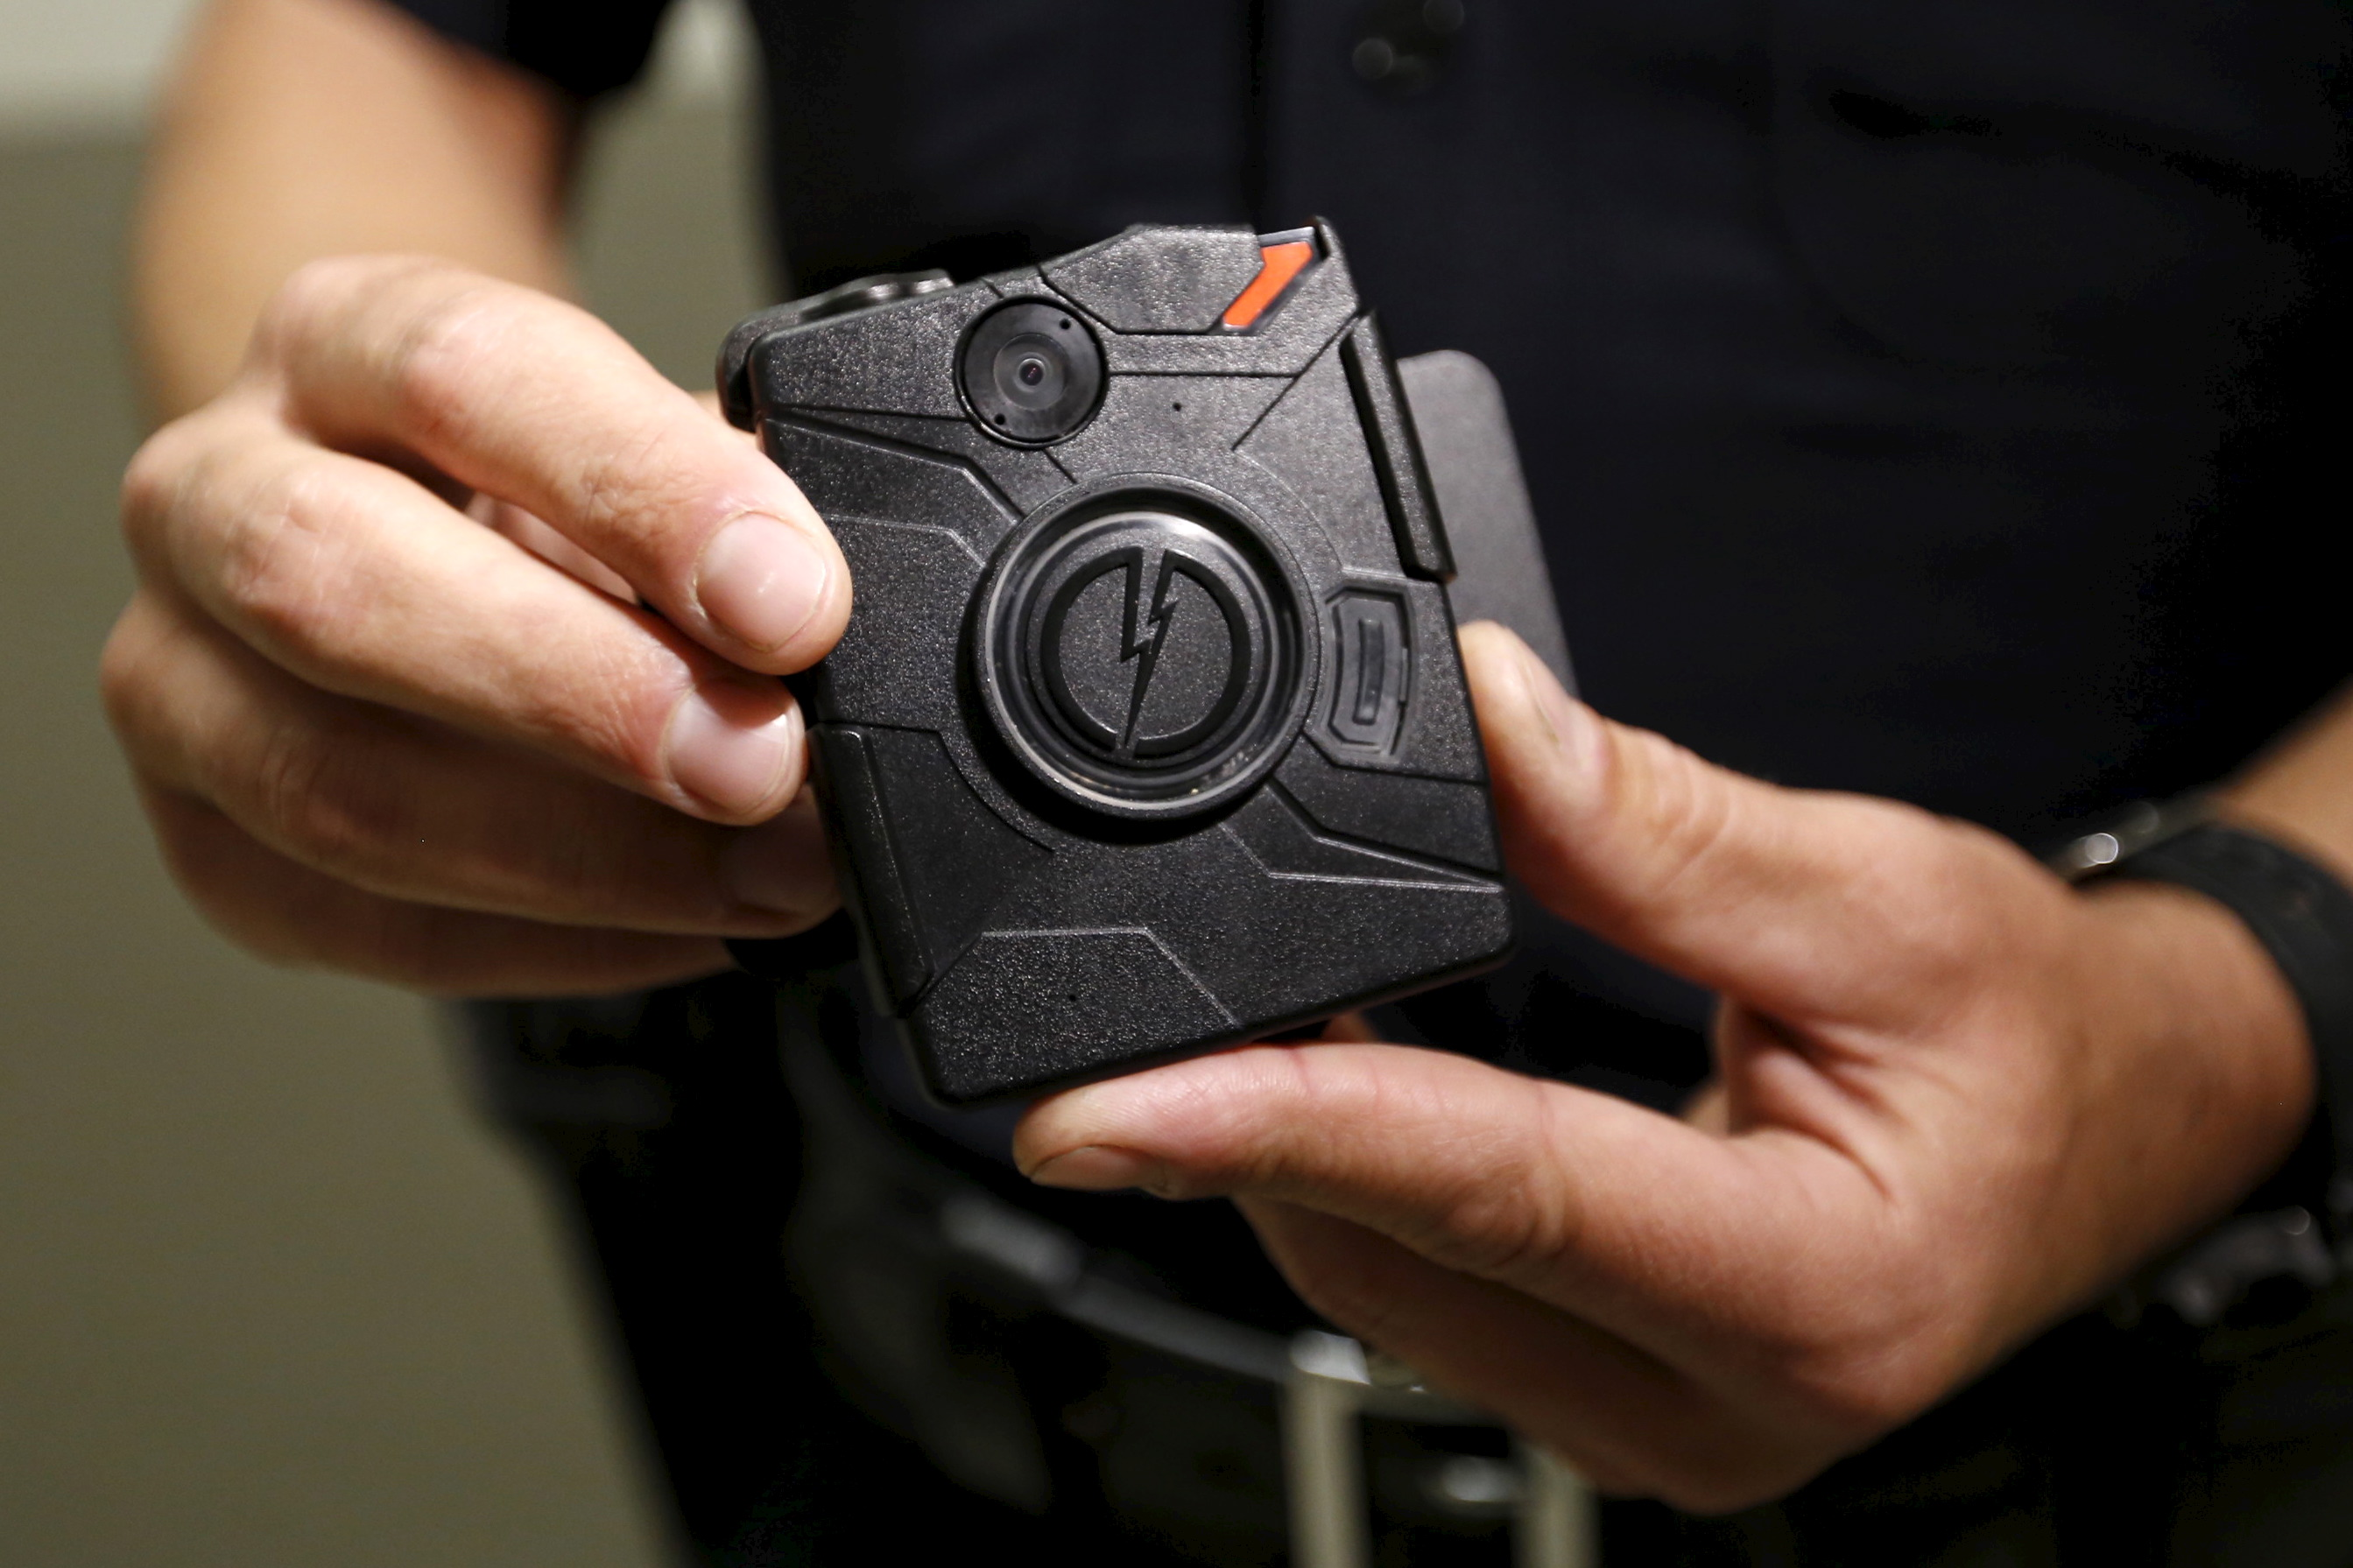 Los Angeles Police Department (LAPD) information technology bureau officer Jim Stover displays the new body cameras to be used by the LAPD in Los Angeles, California August 31, 2015.  REUTERS/Al Seib/Pool/Files